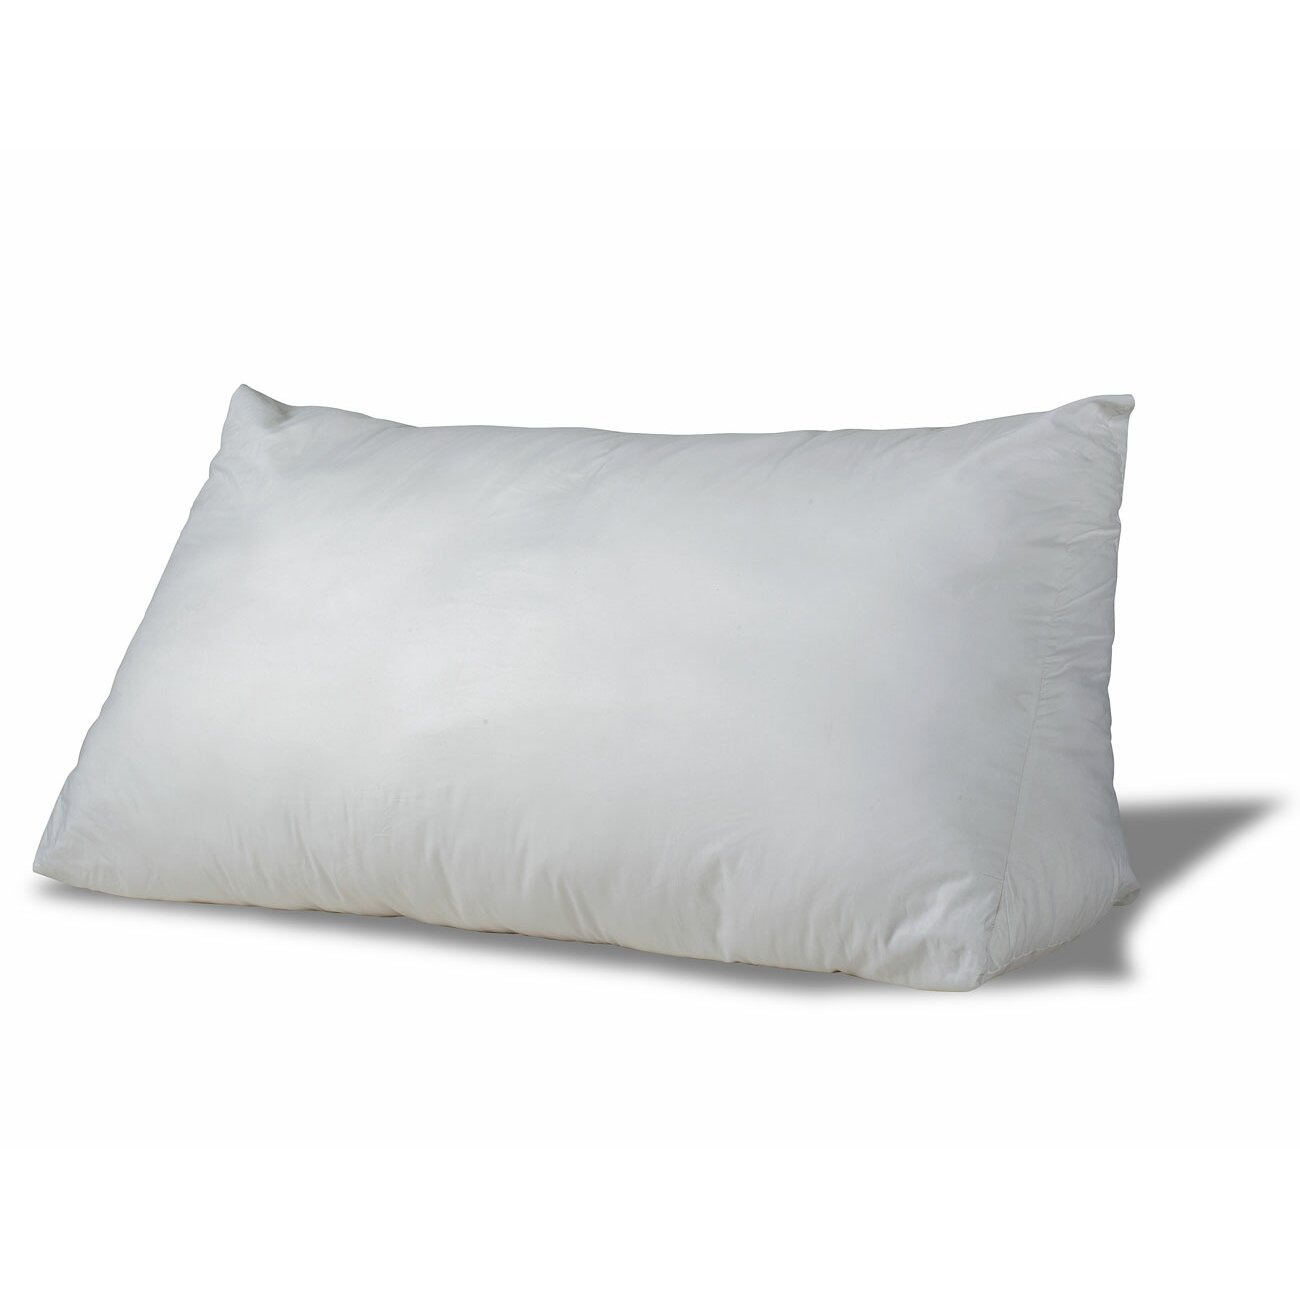 eLuxurySupply Fill Reading Wedge Feathers King Pillow